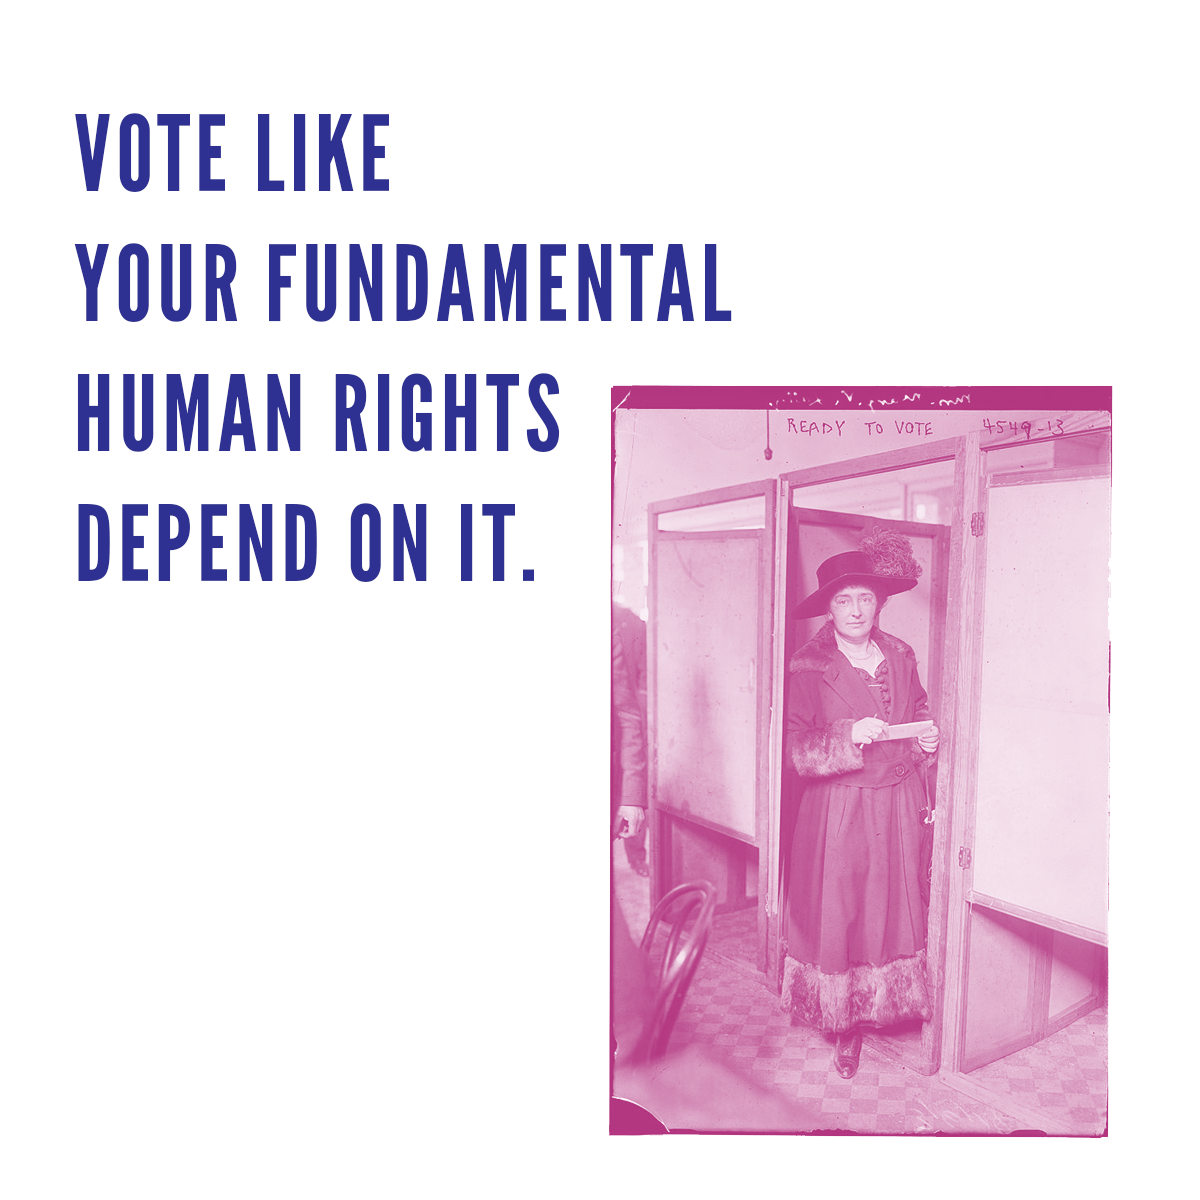 Historical-Voting-Rights-v2.png